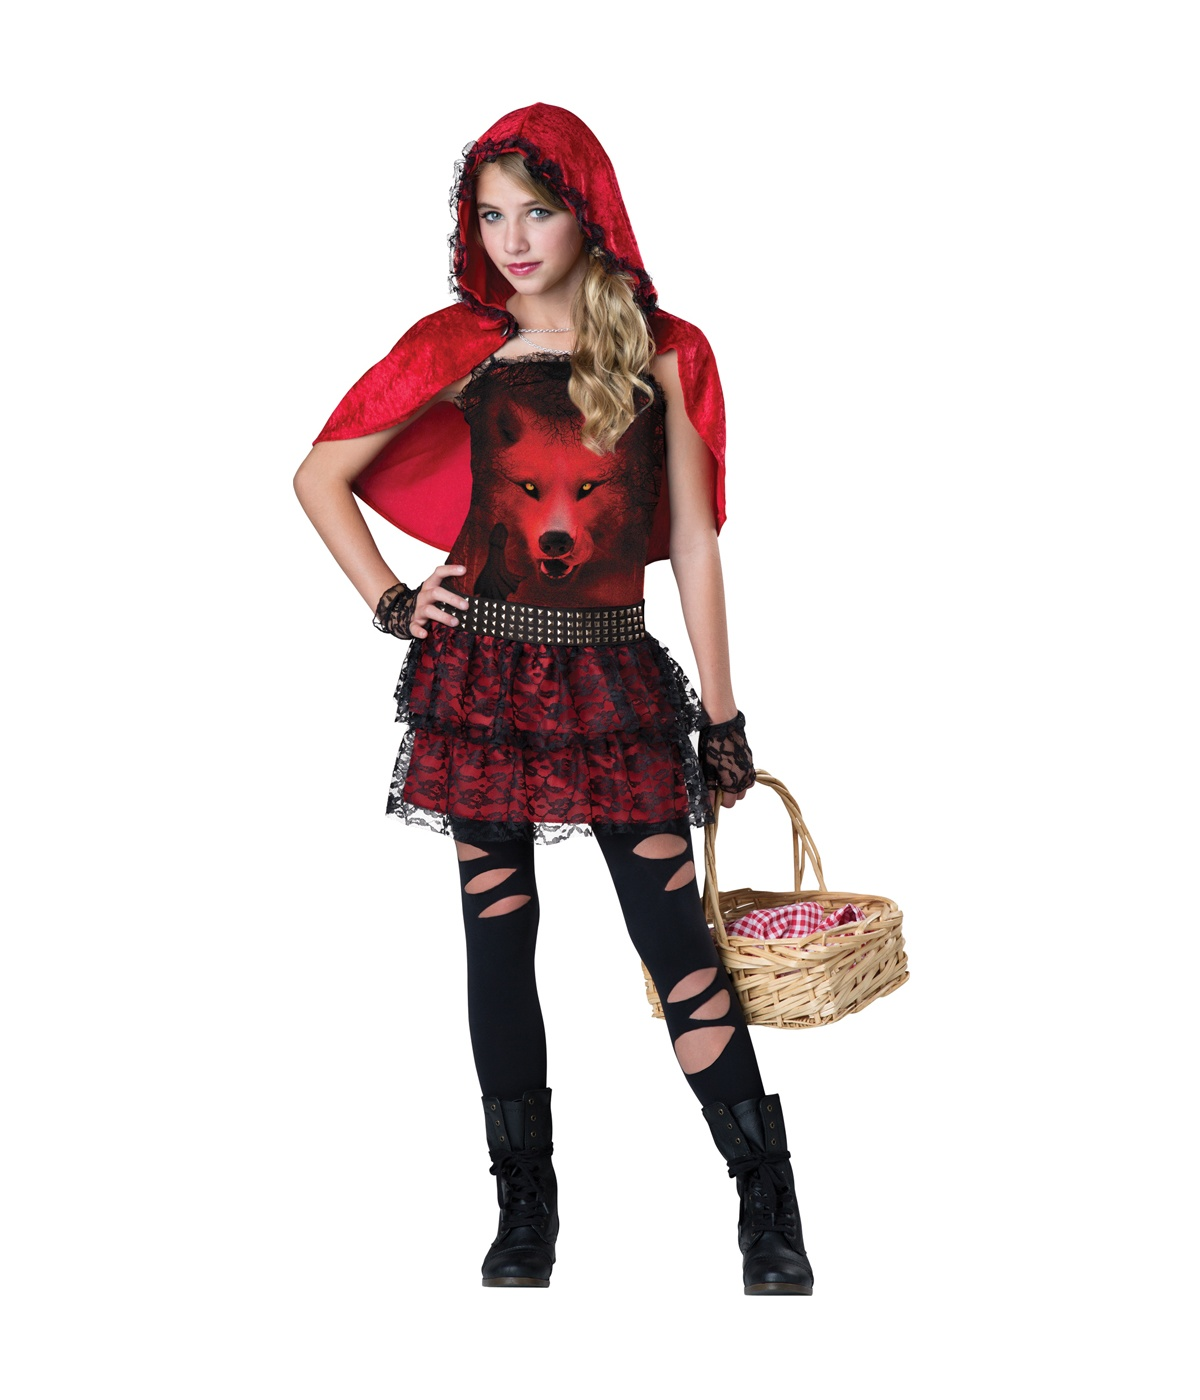 Little Red Riding Punk Girls Costume - New Arrivals-2900